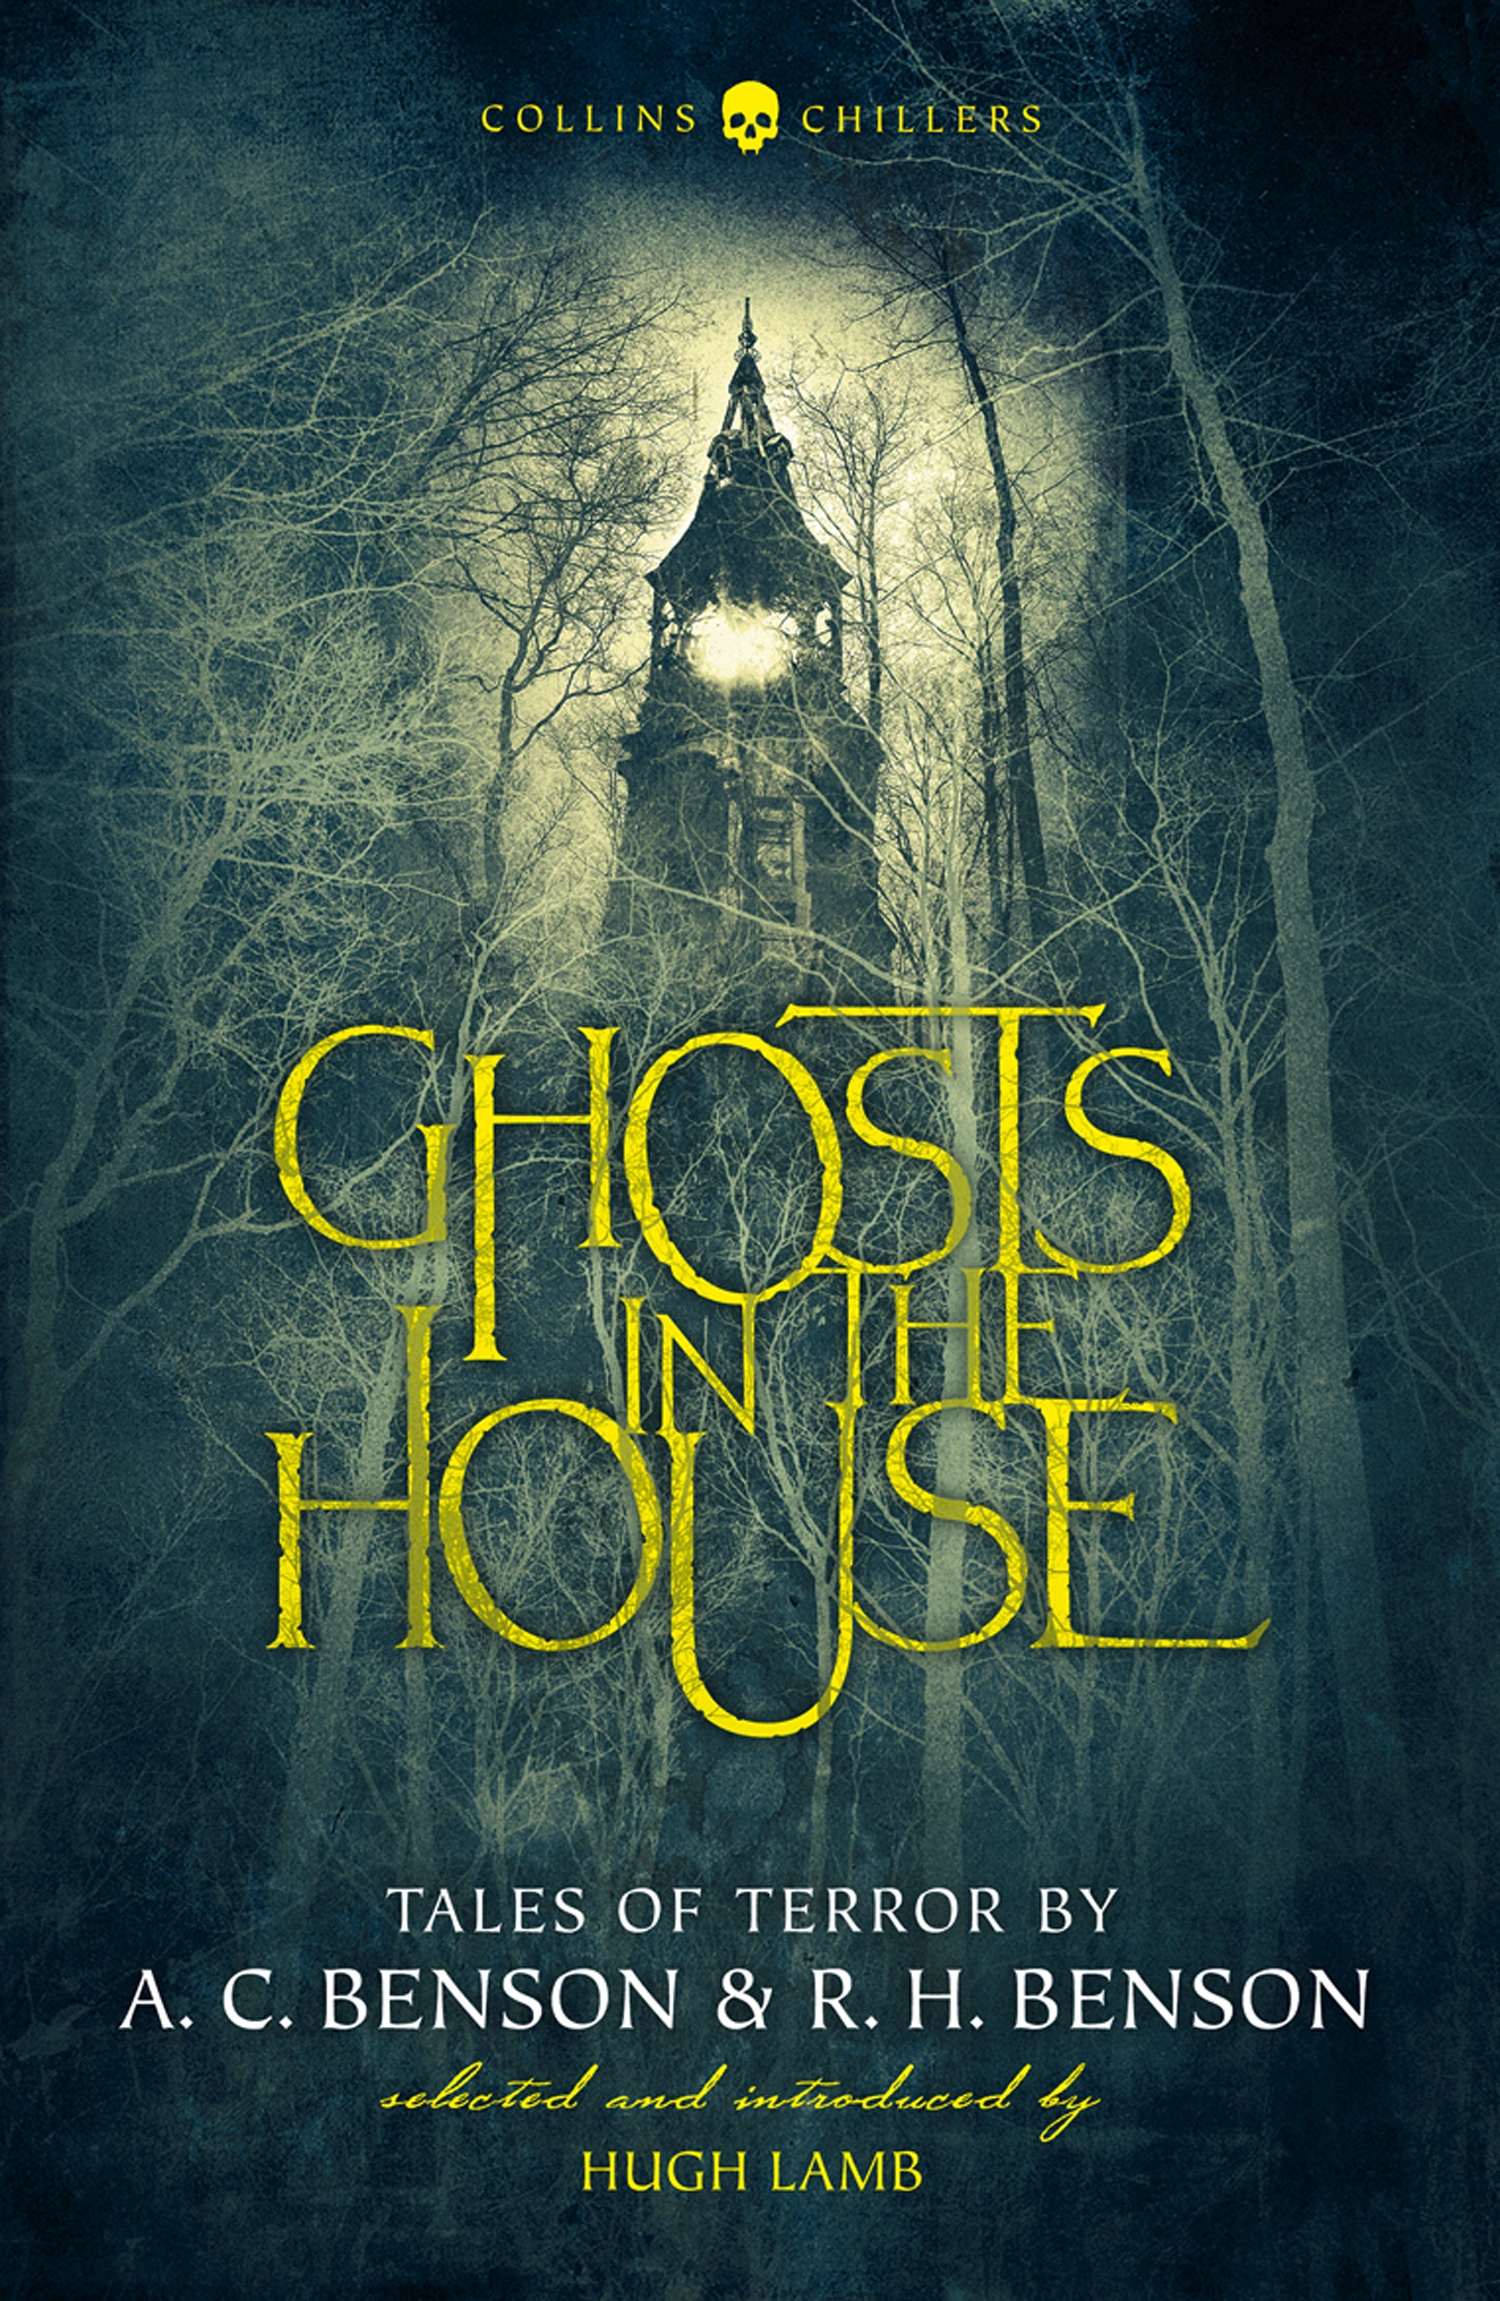 A. Benson C., Ghosts in the House: Tales of Terror by A. C. Benson ...